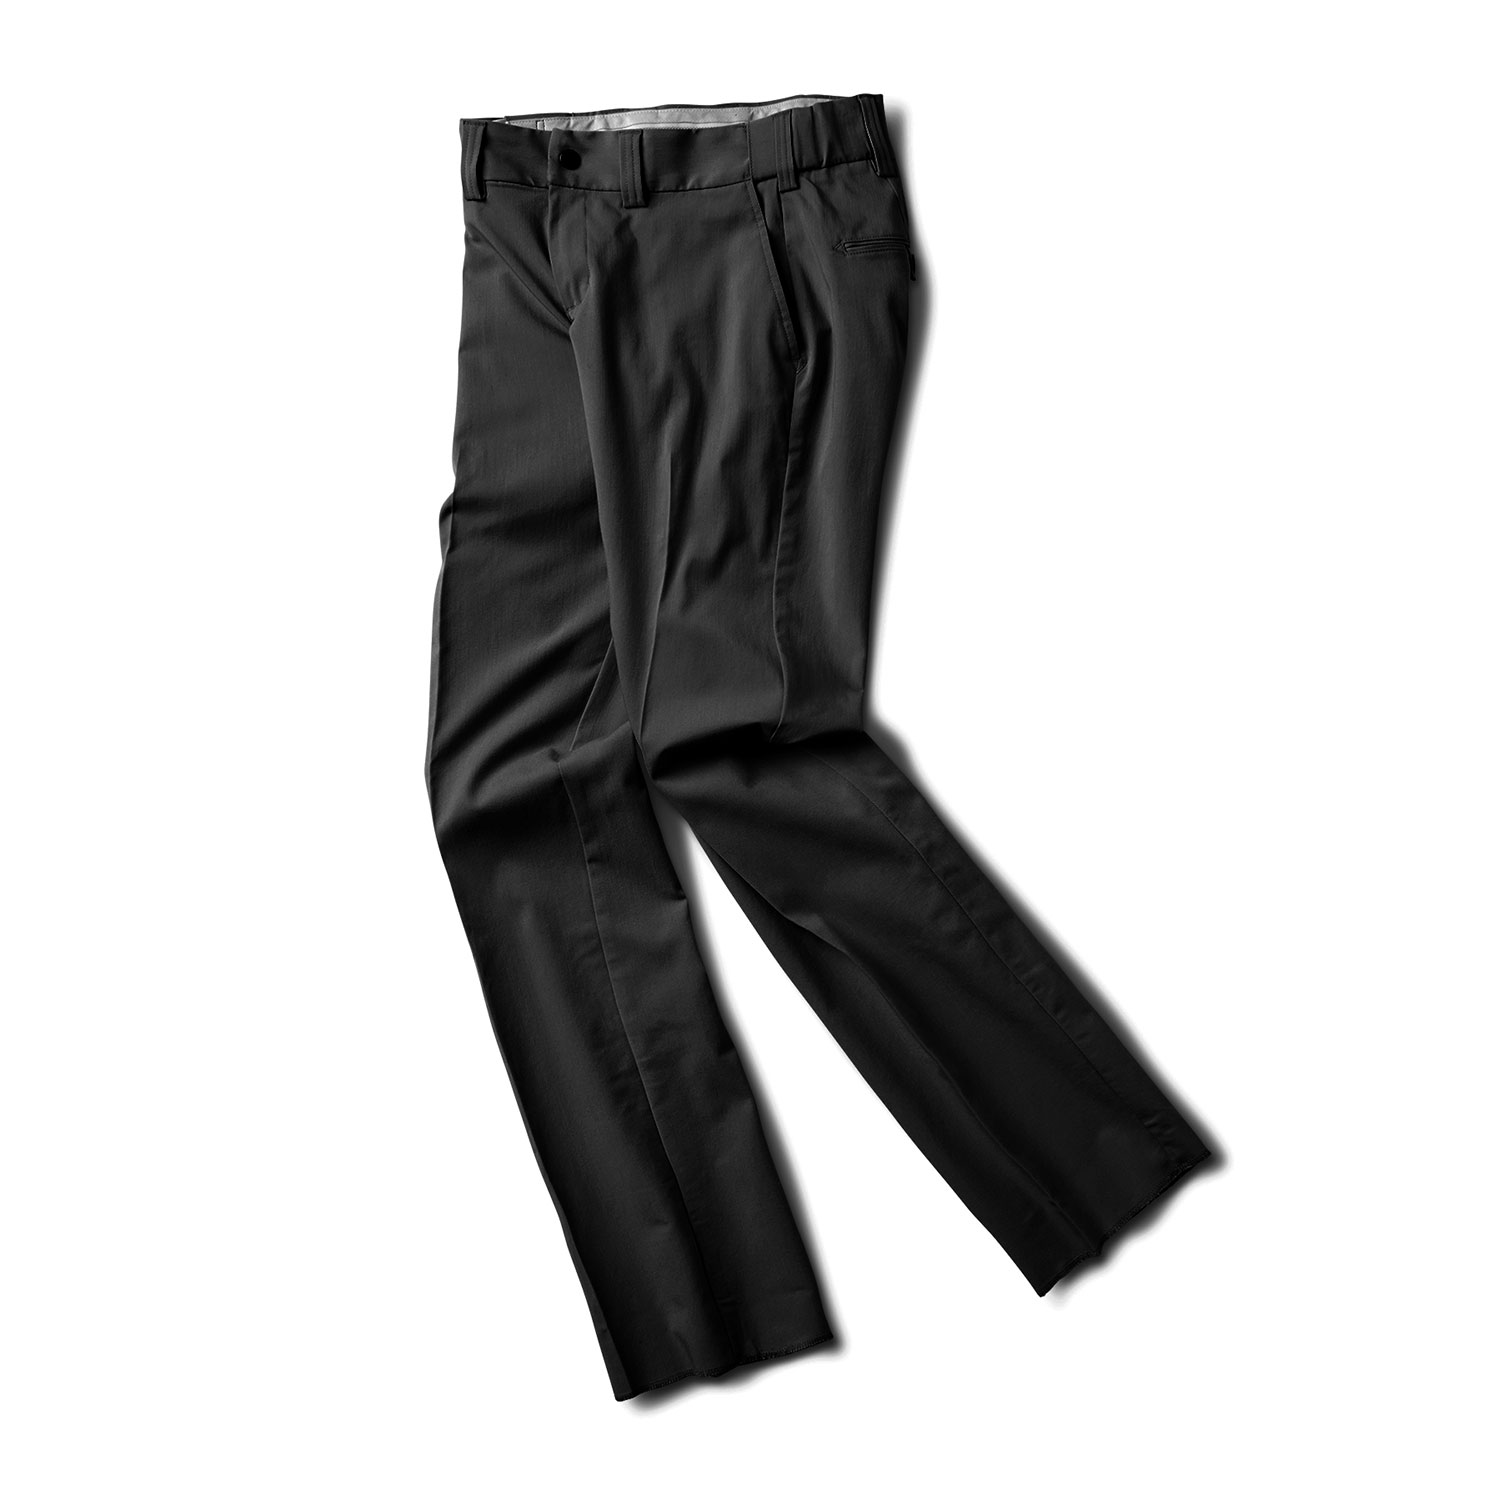 5.11 Women's Class A Flex-Tac Poly/Wool Twill Pants